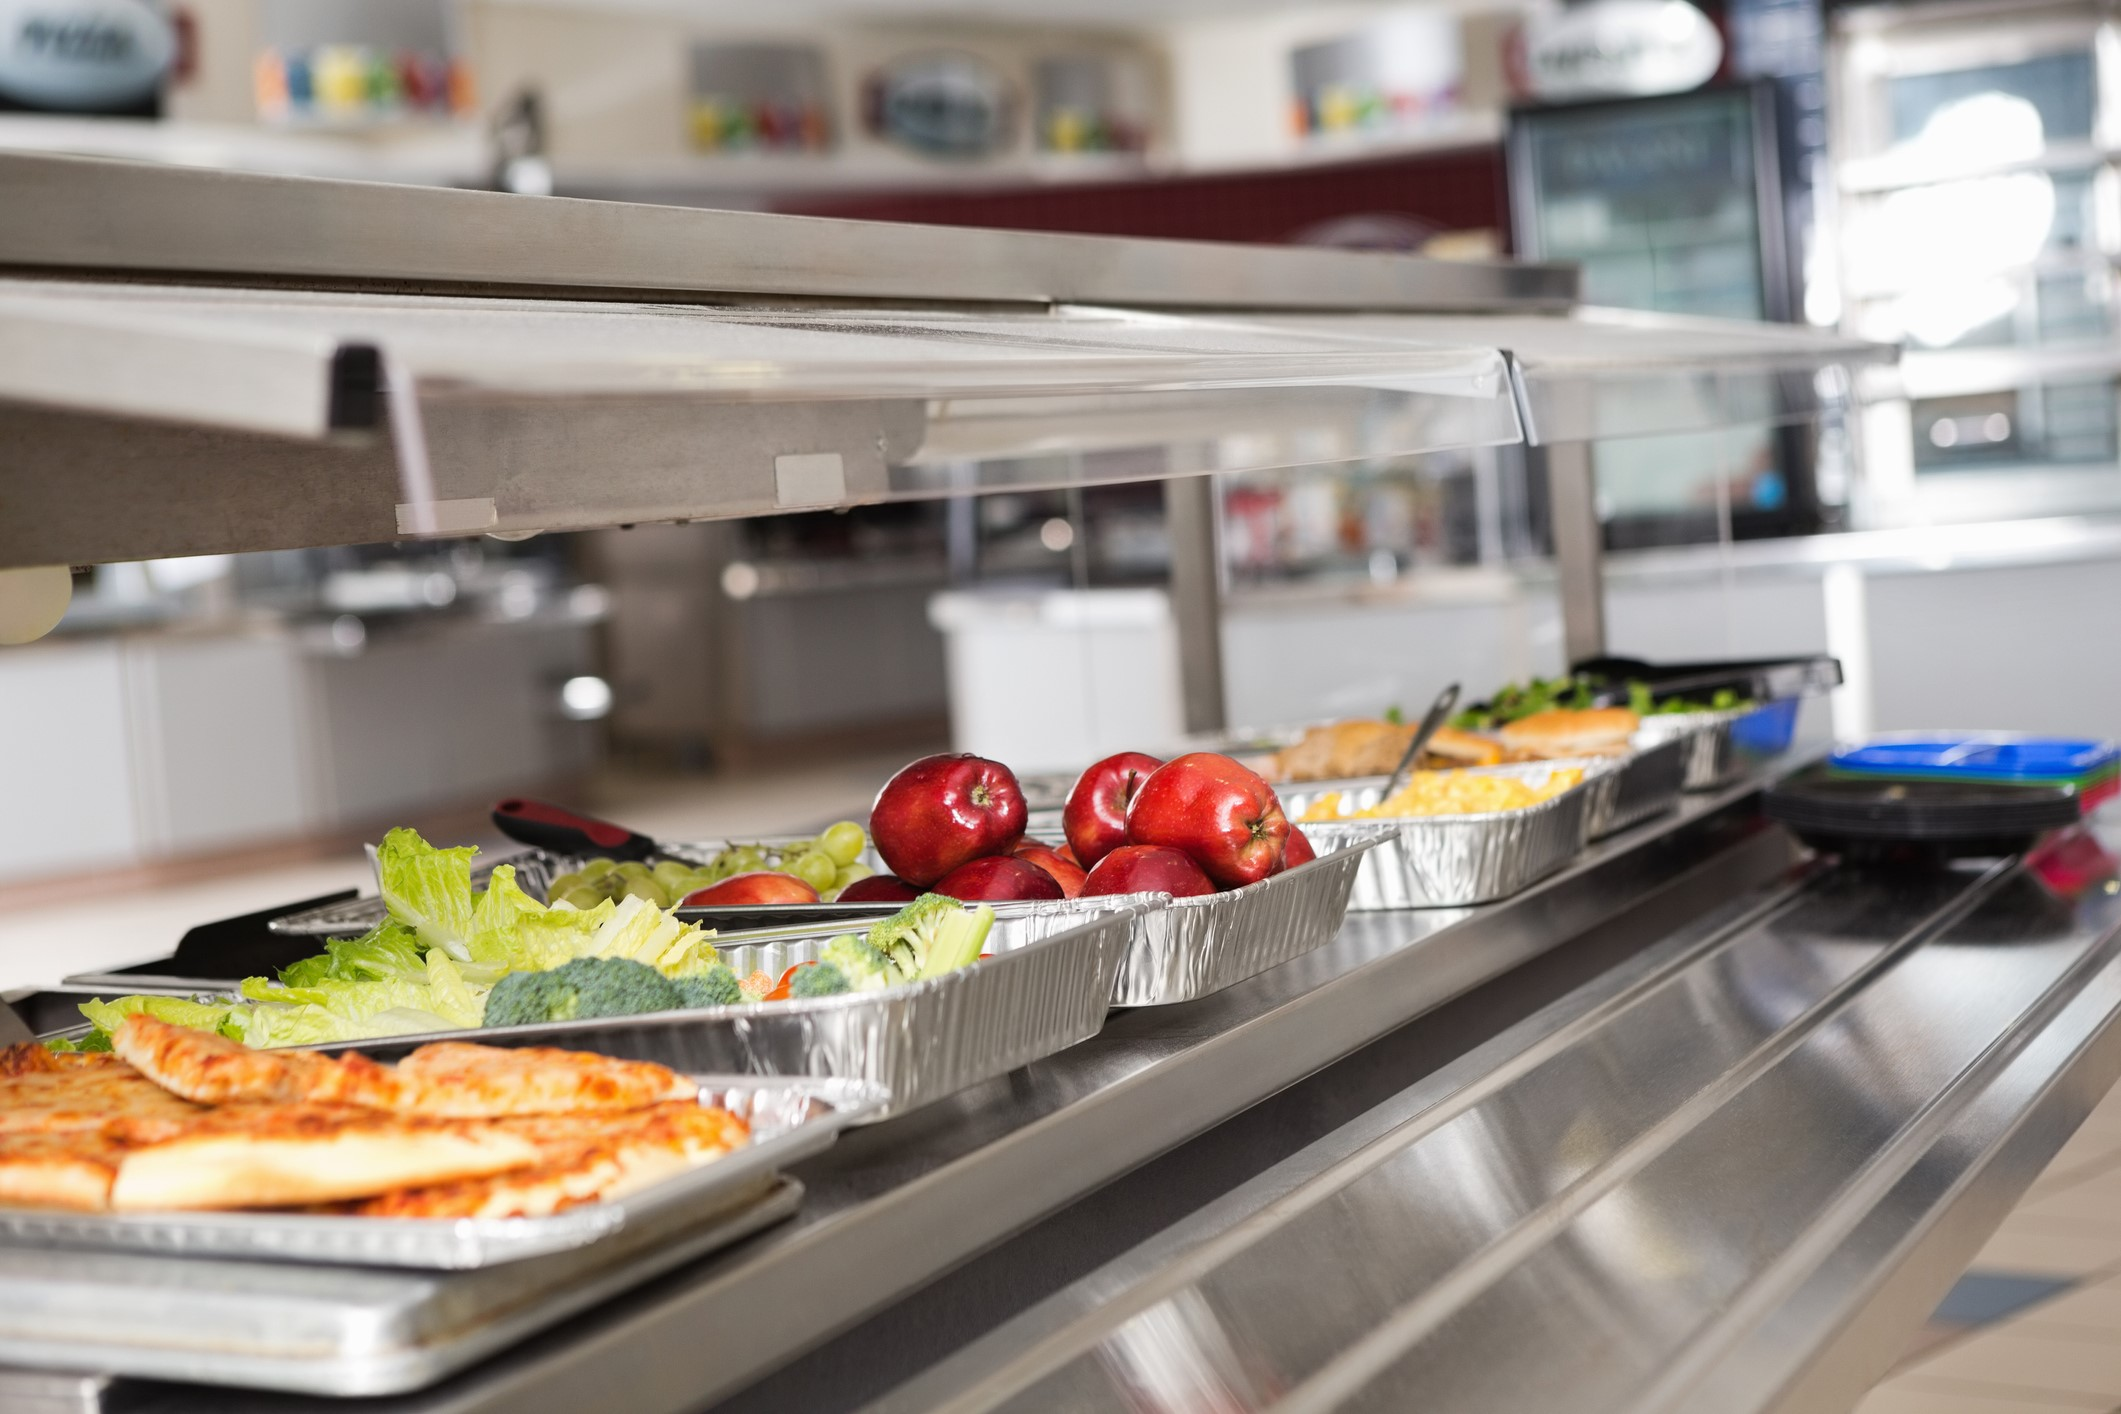 New Research on Food Environments in Juvenile Justice Facilities